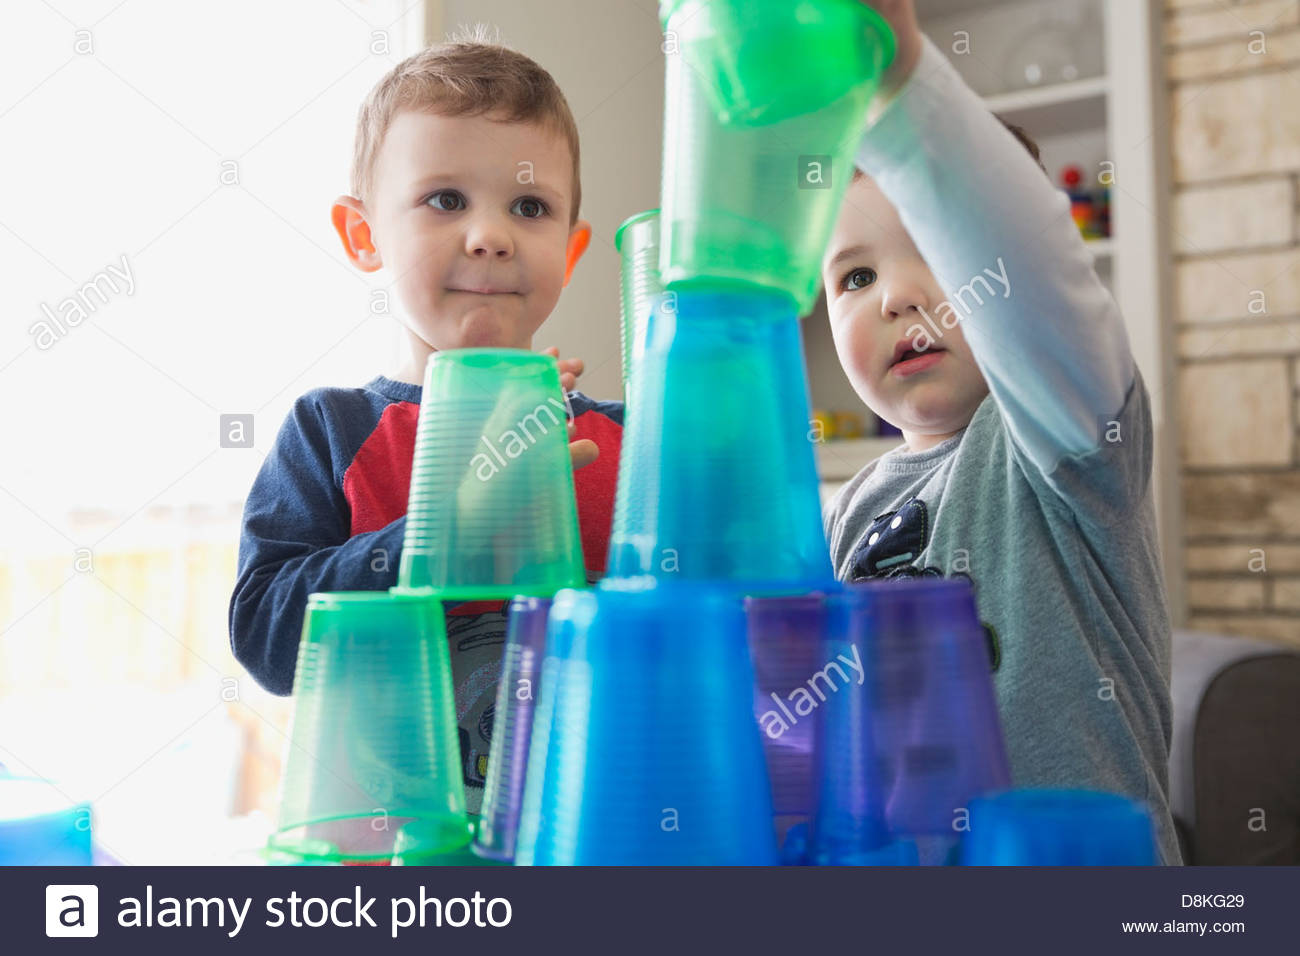 Boys playing with plastic cups at home - Stock Image